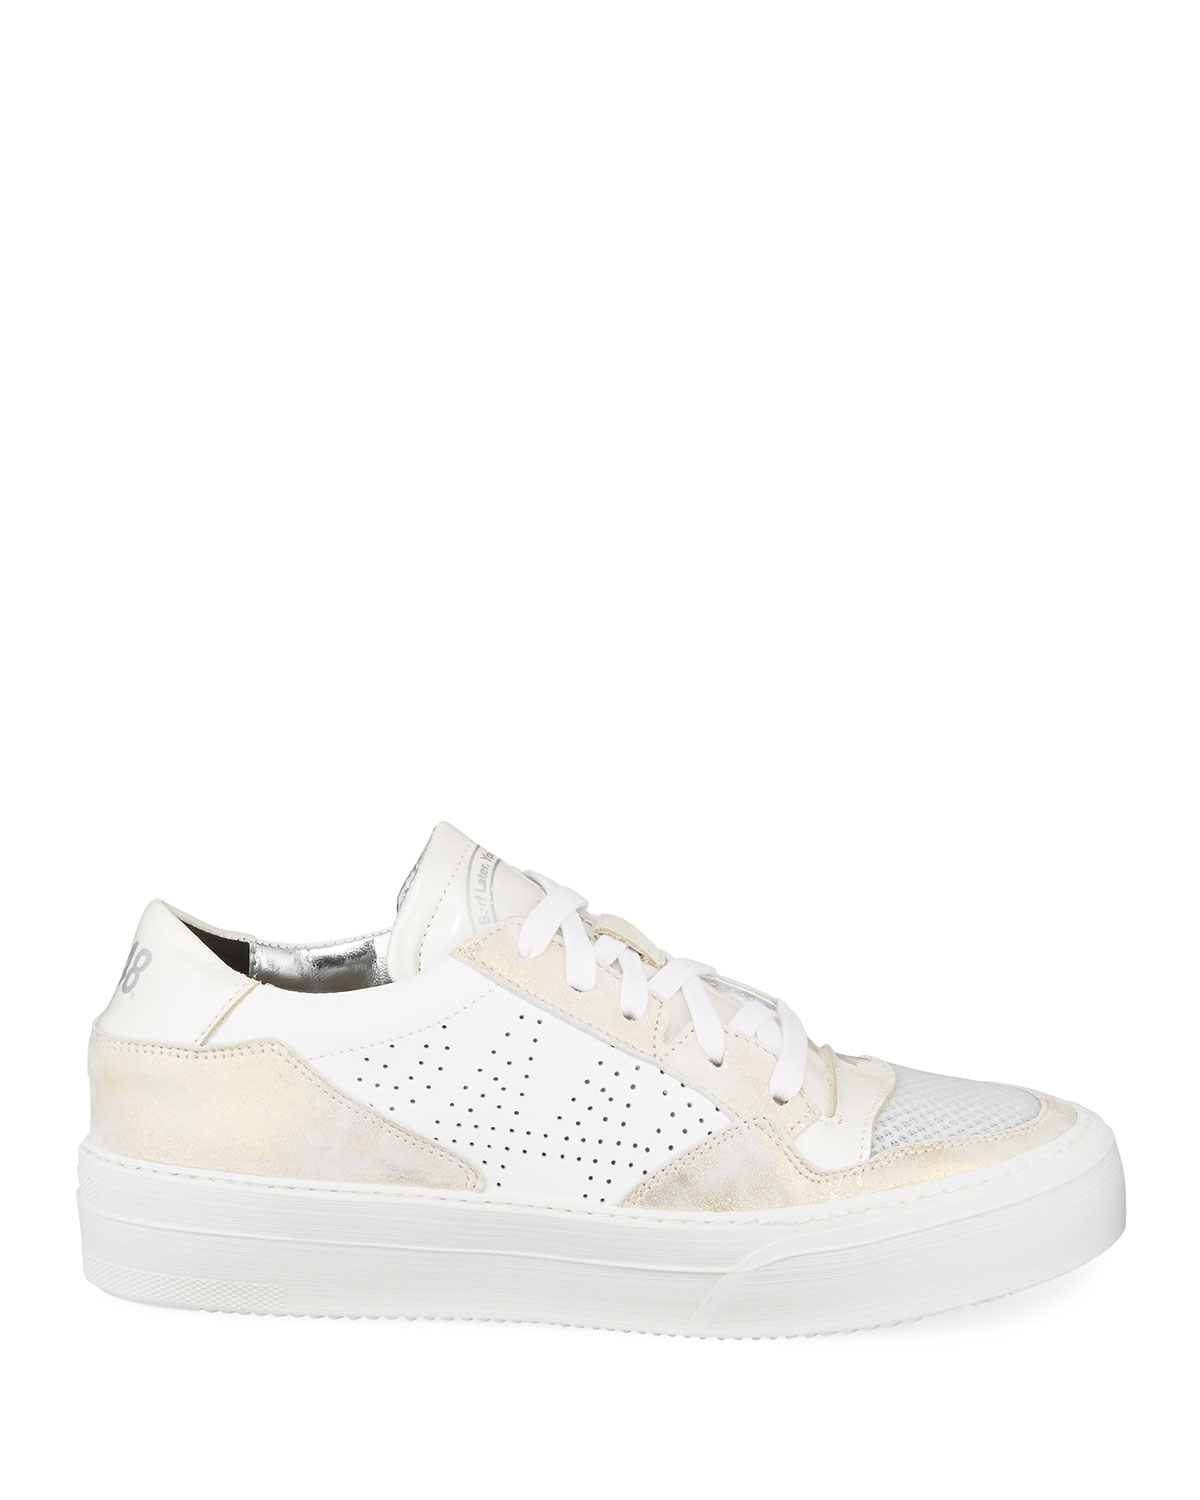 P448 Spacelow Pearlized Low-Top